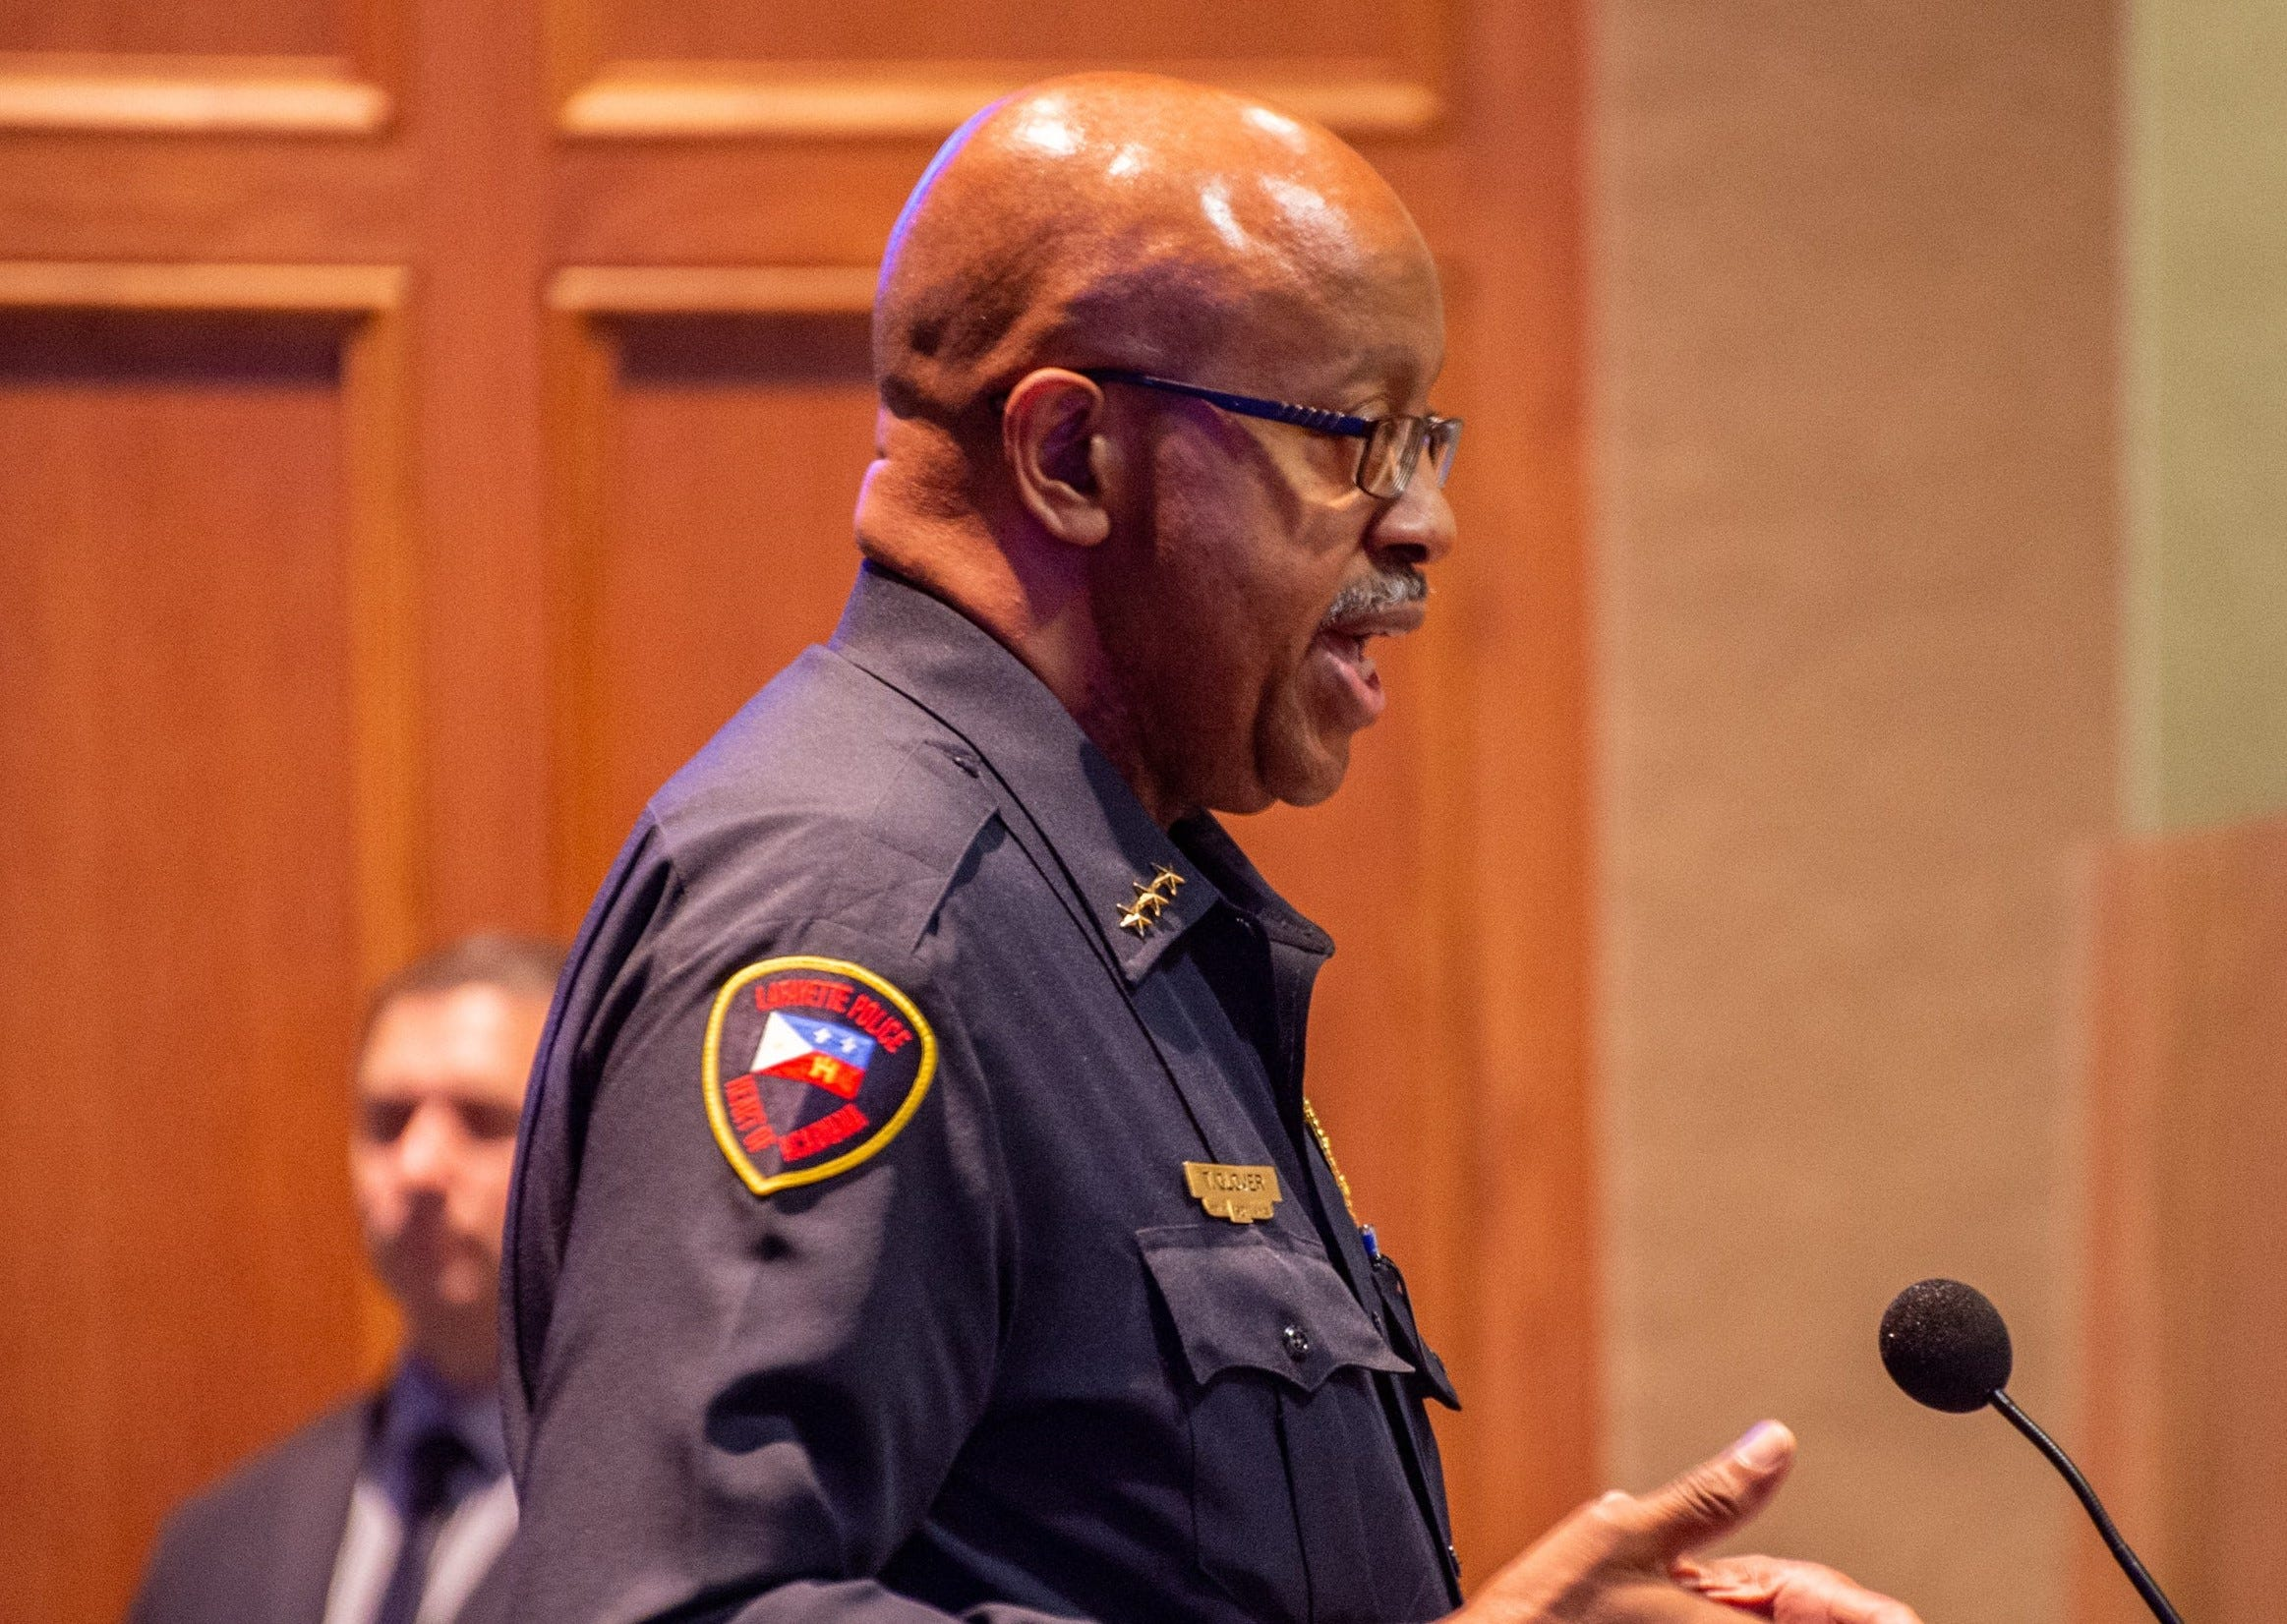 Lafayette Police Chief Thomas Glover at a meeting.